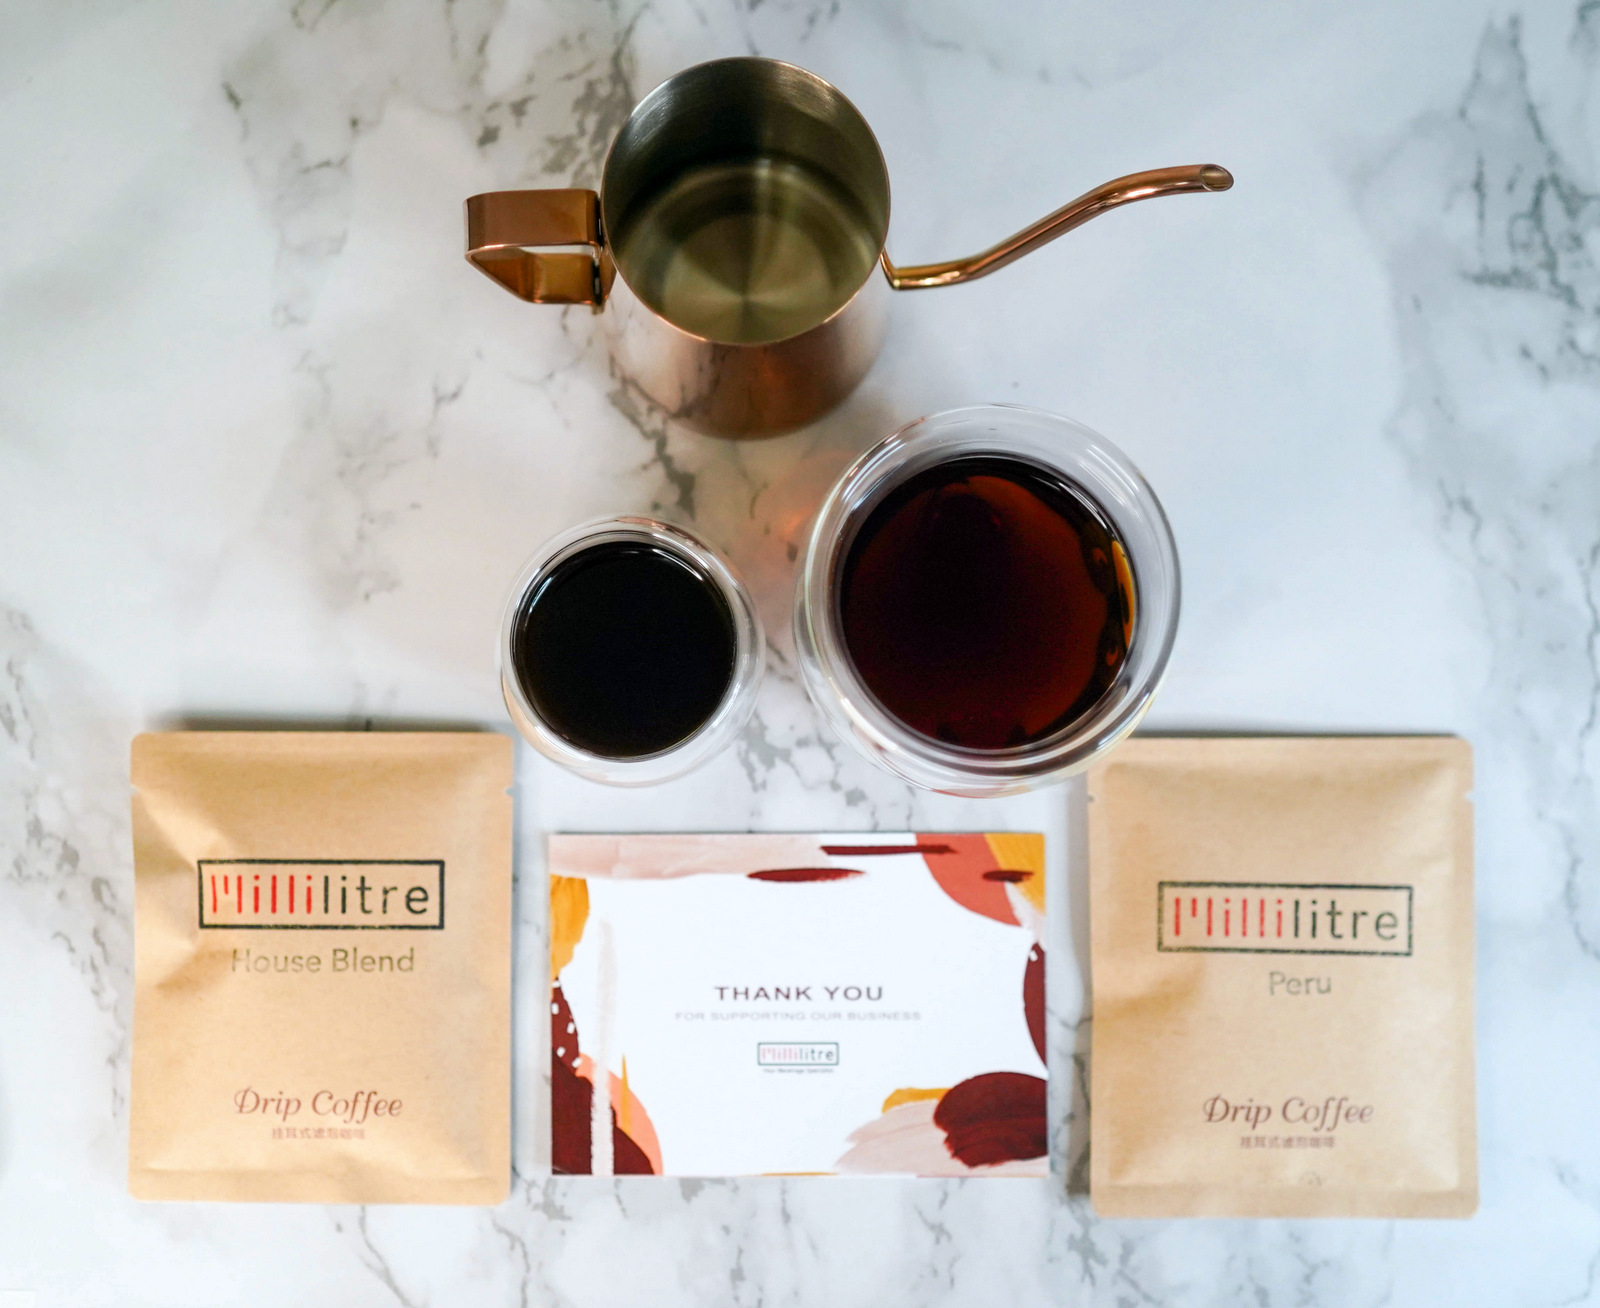 Millilitre: Delicious drip bag coffee to take anywhere, make in three minutes